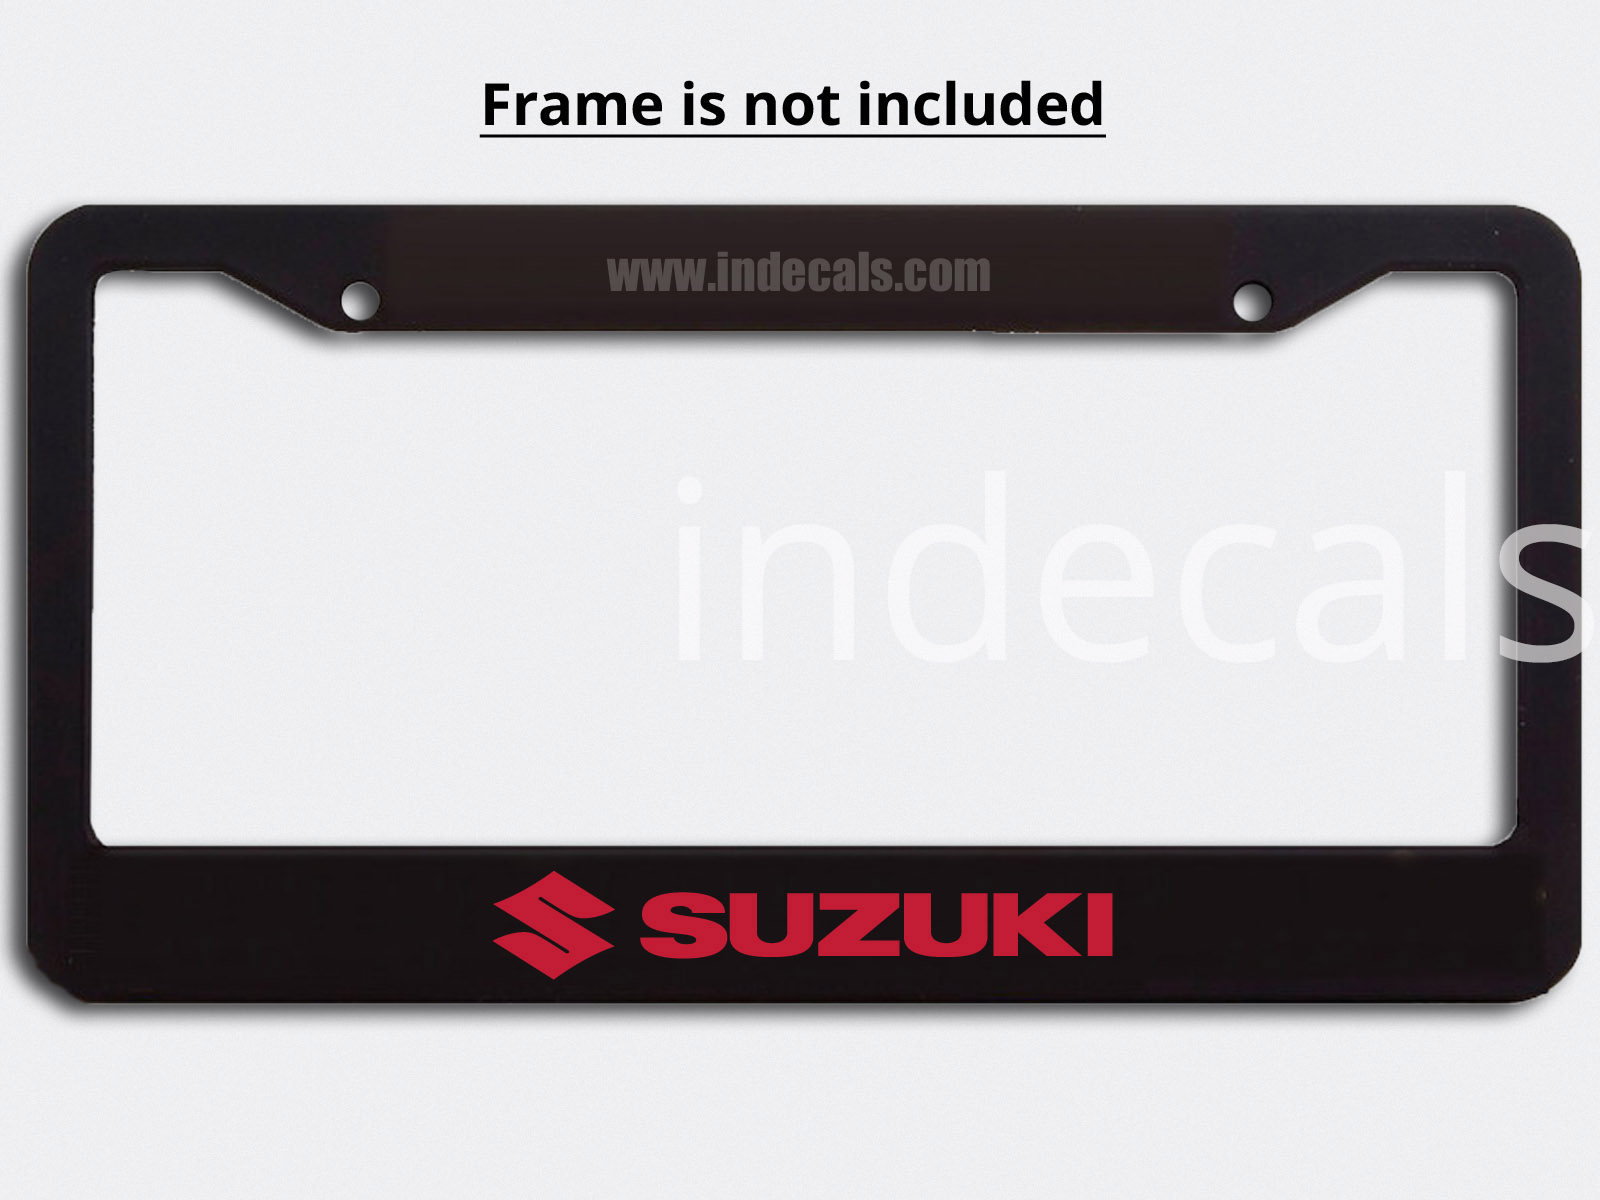 3 x Suzuki Stickers for Plate Frame - Red